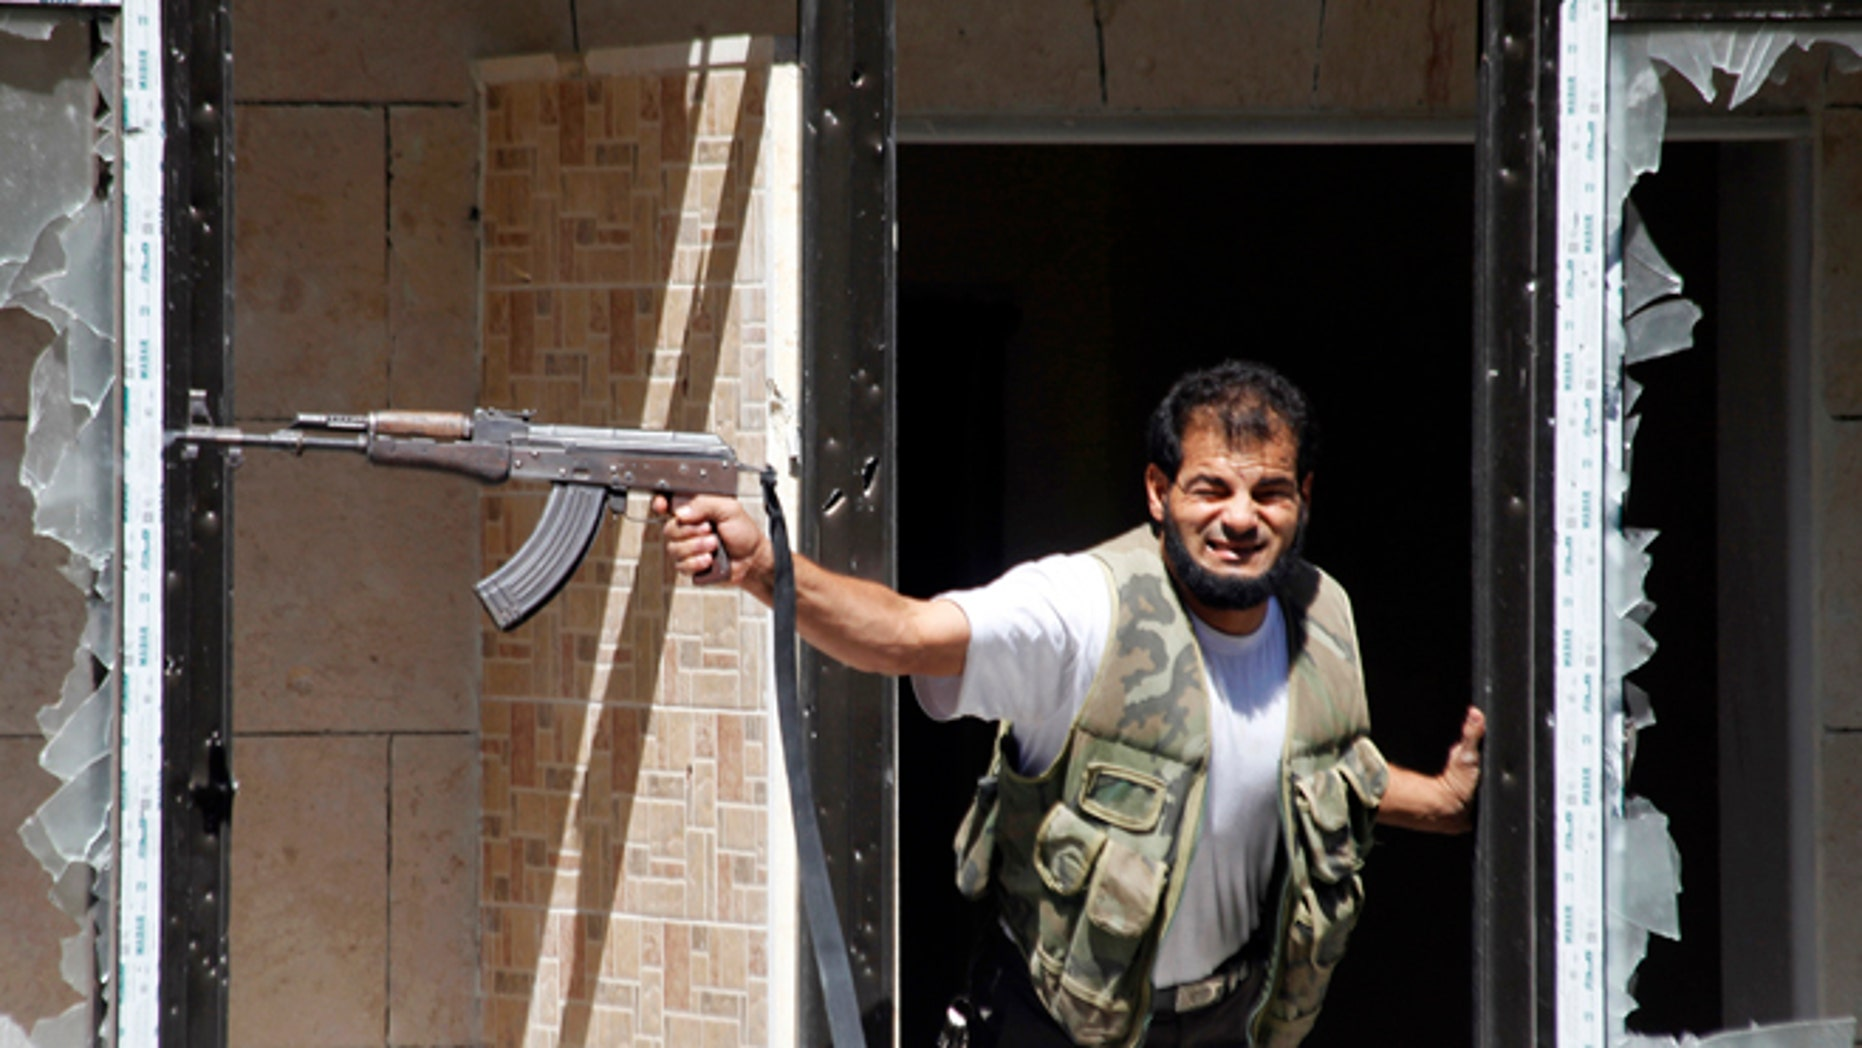 FILE: Sept. 13, 2013: A Free Syrian Army fighter fires his weapon at the Justice Palace, controlled by President Bashar al-Assad, in Aleppo, Syria.